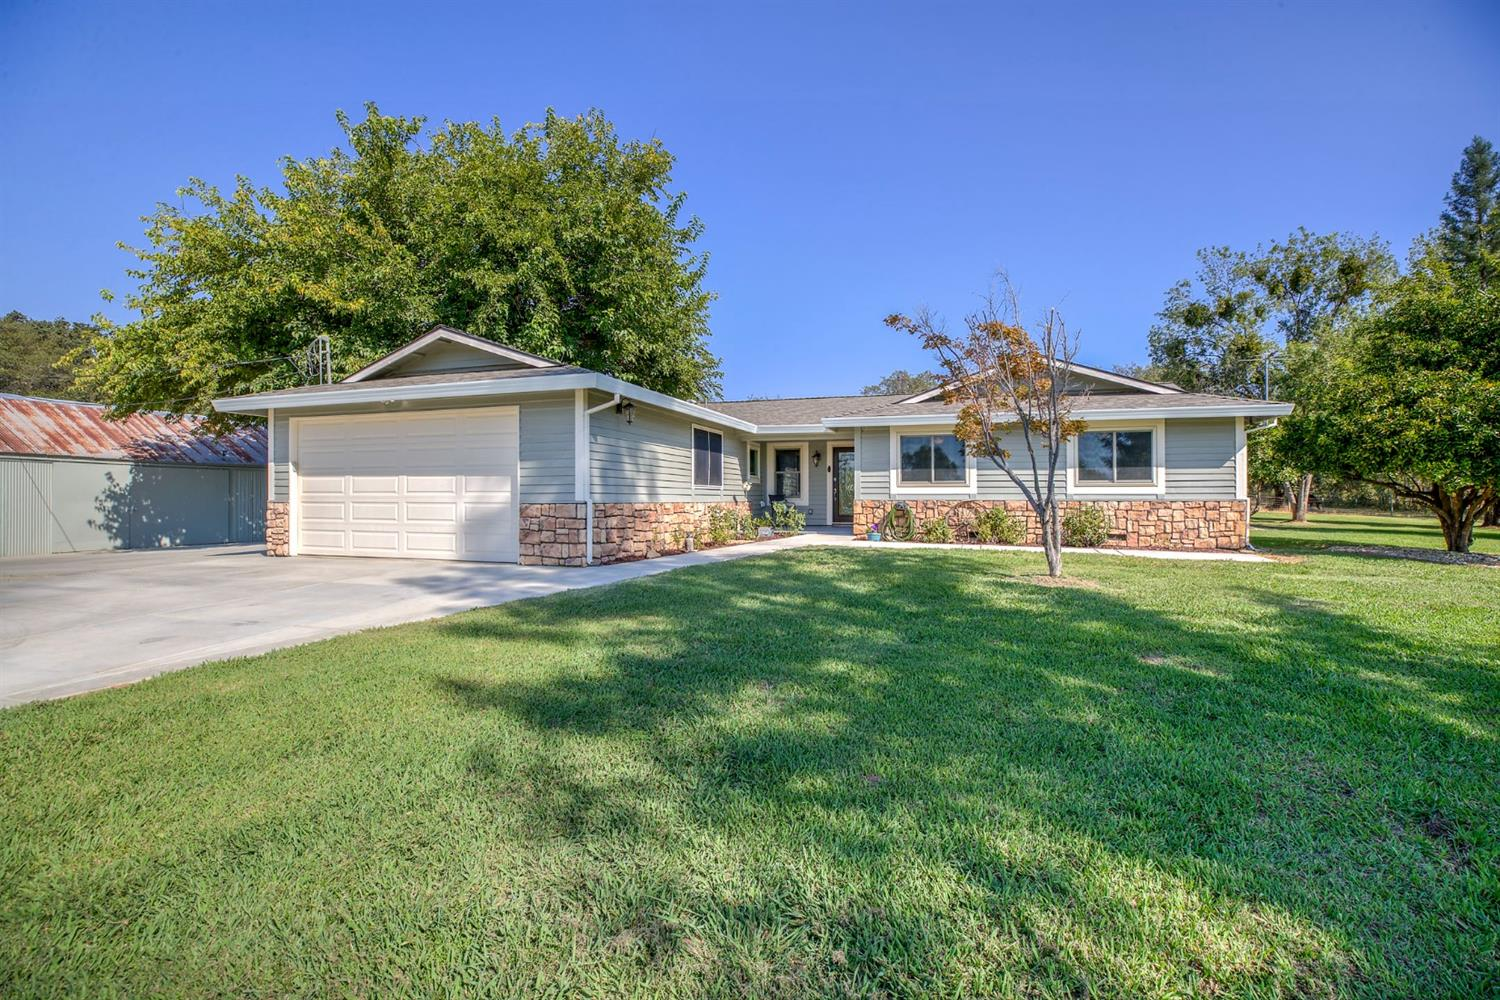 The work here is done! Recently updated single story home on 7.5 acres! Park like setting with 1/4